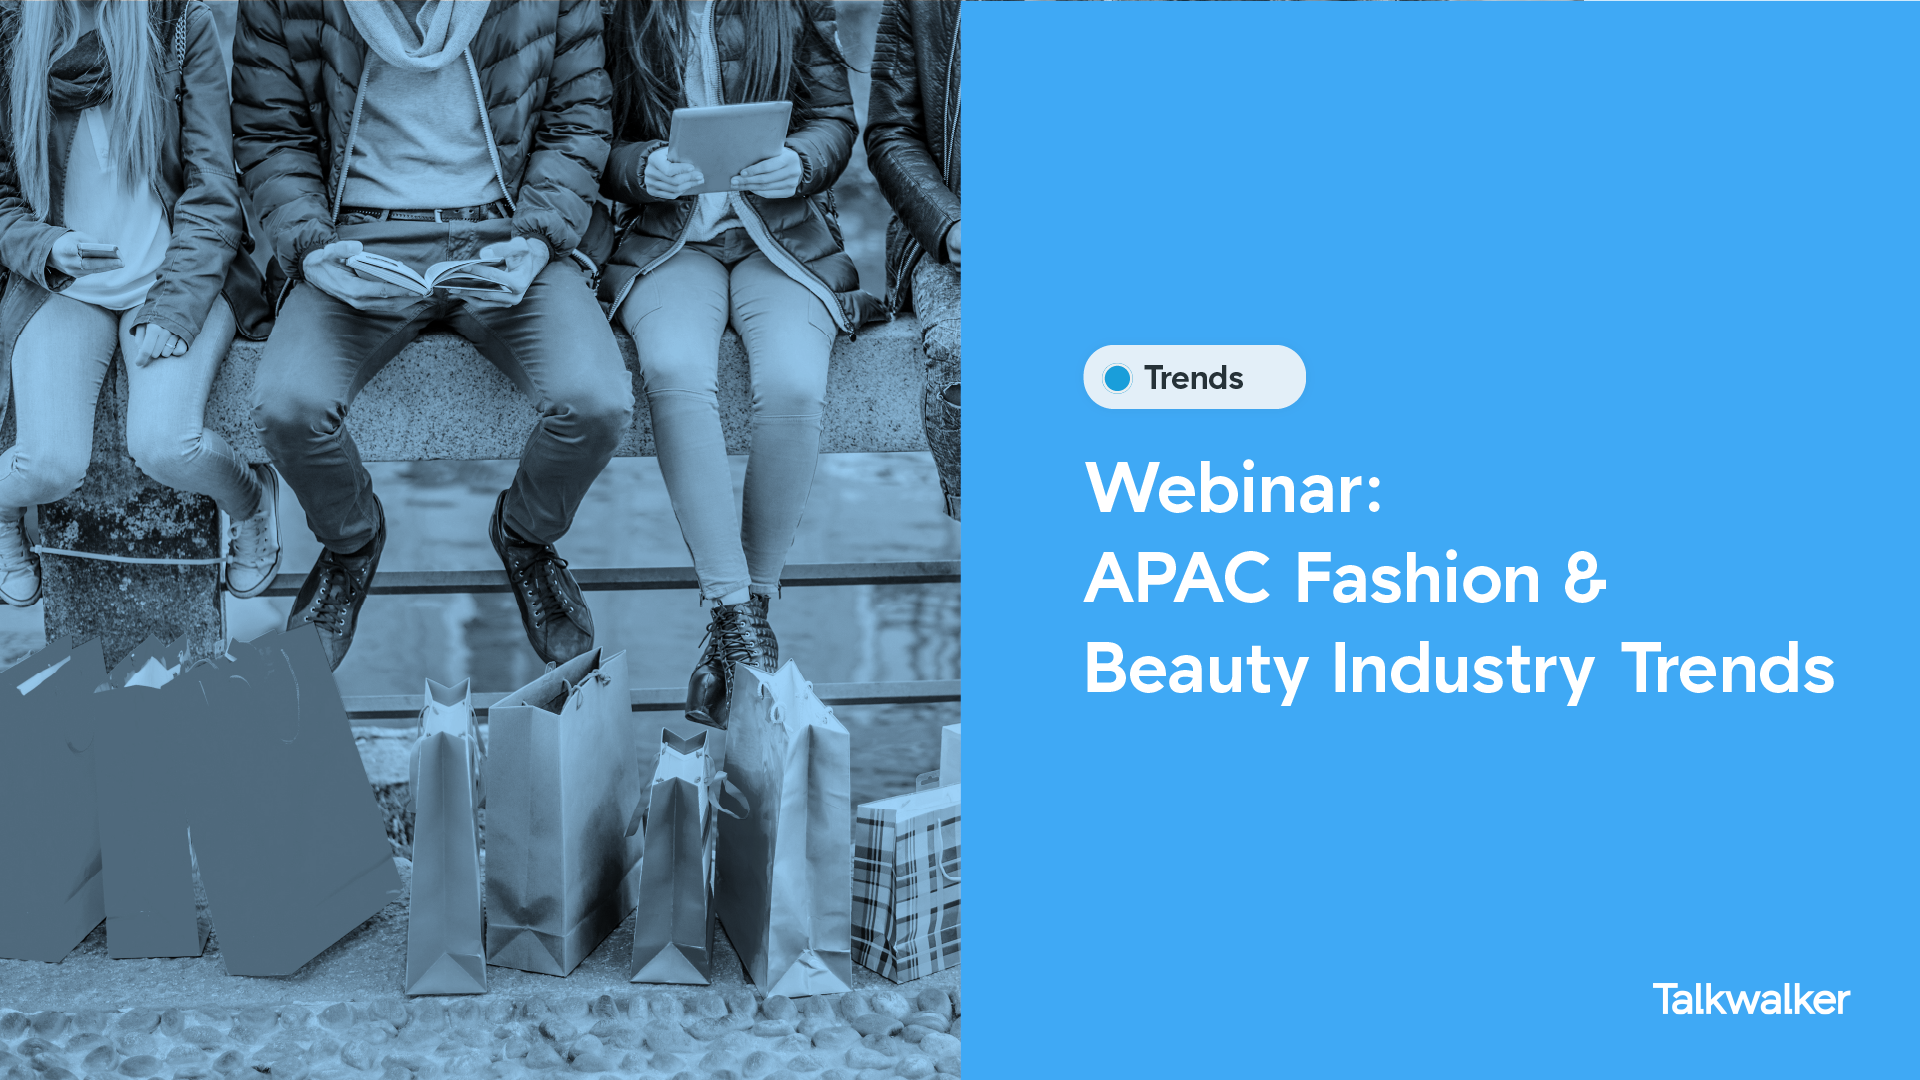 Navigating the APAC fashion & beauty industry with consumer insights